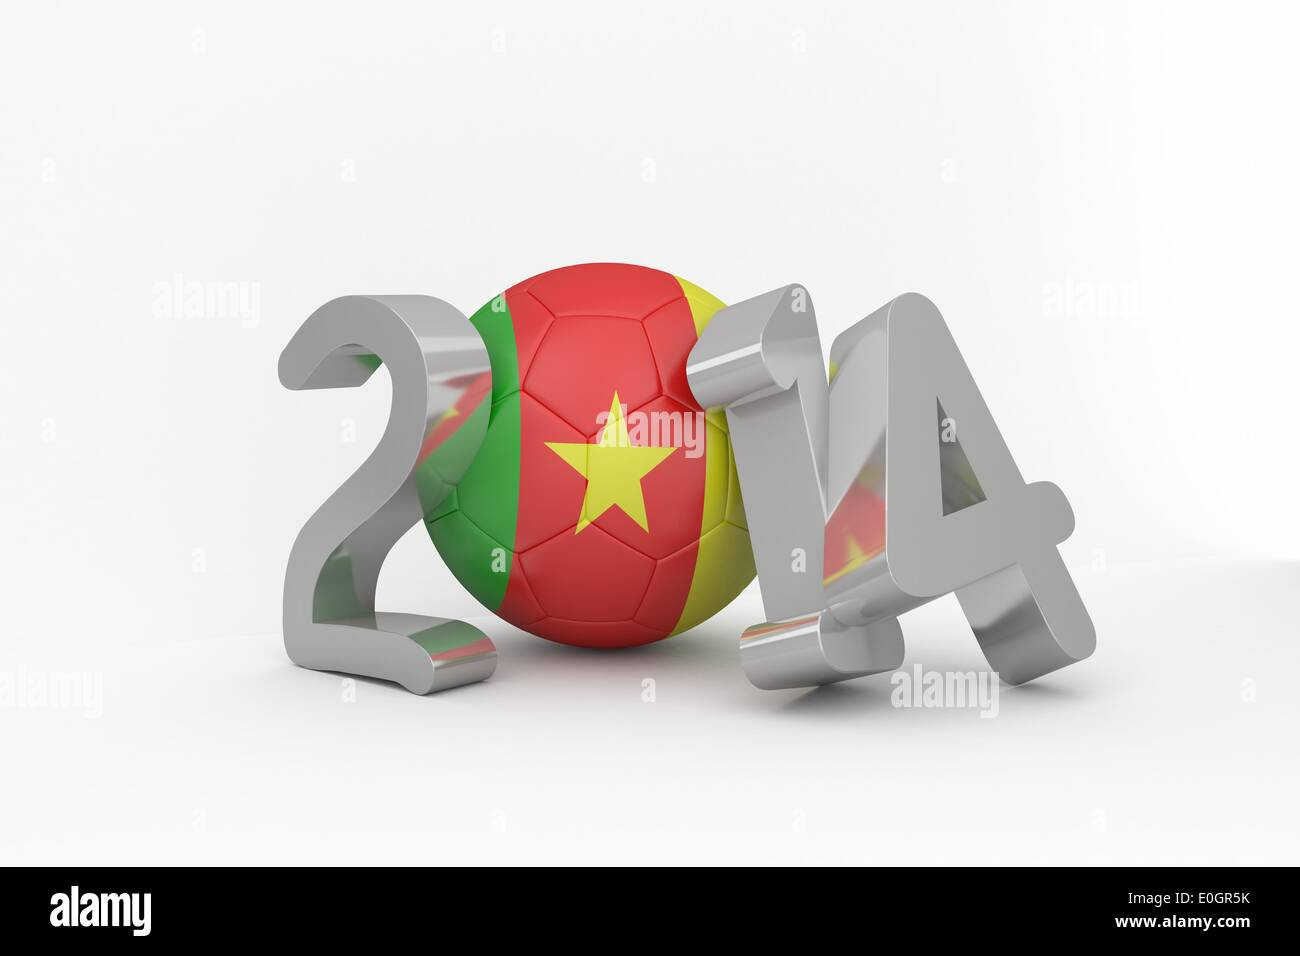 Cameroon world cup 2014 - Stock Image